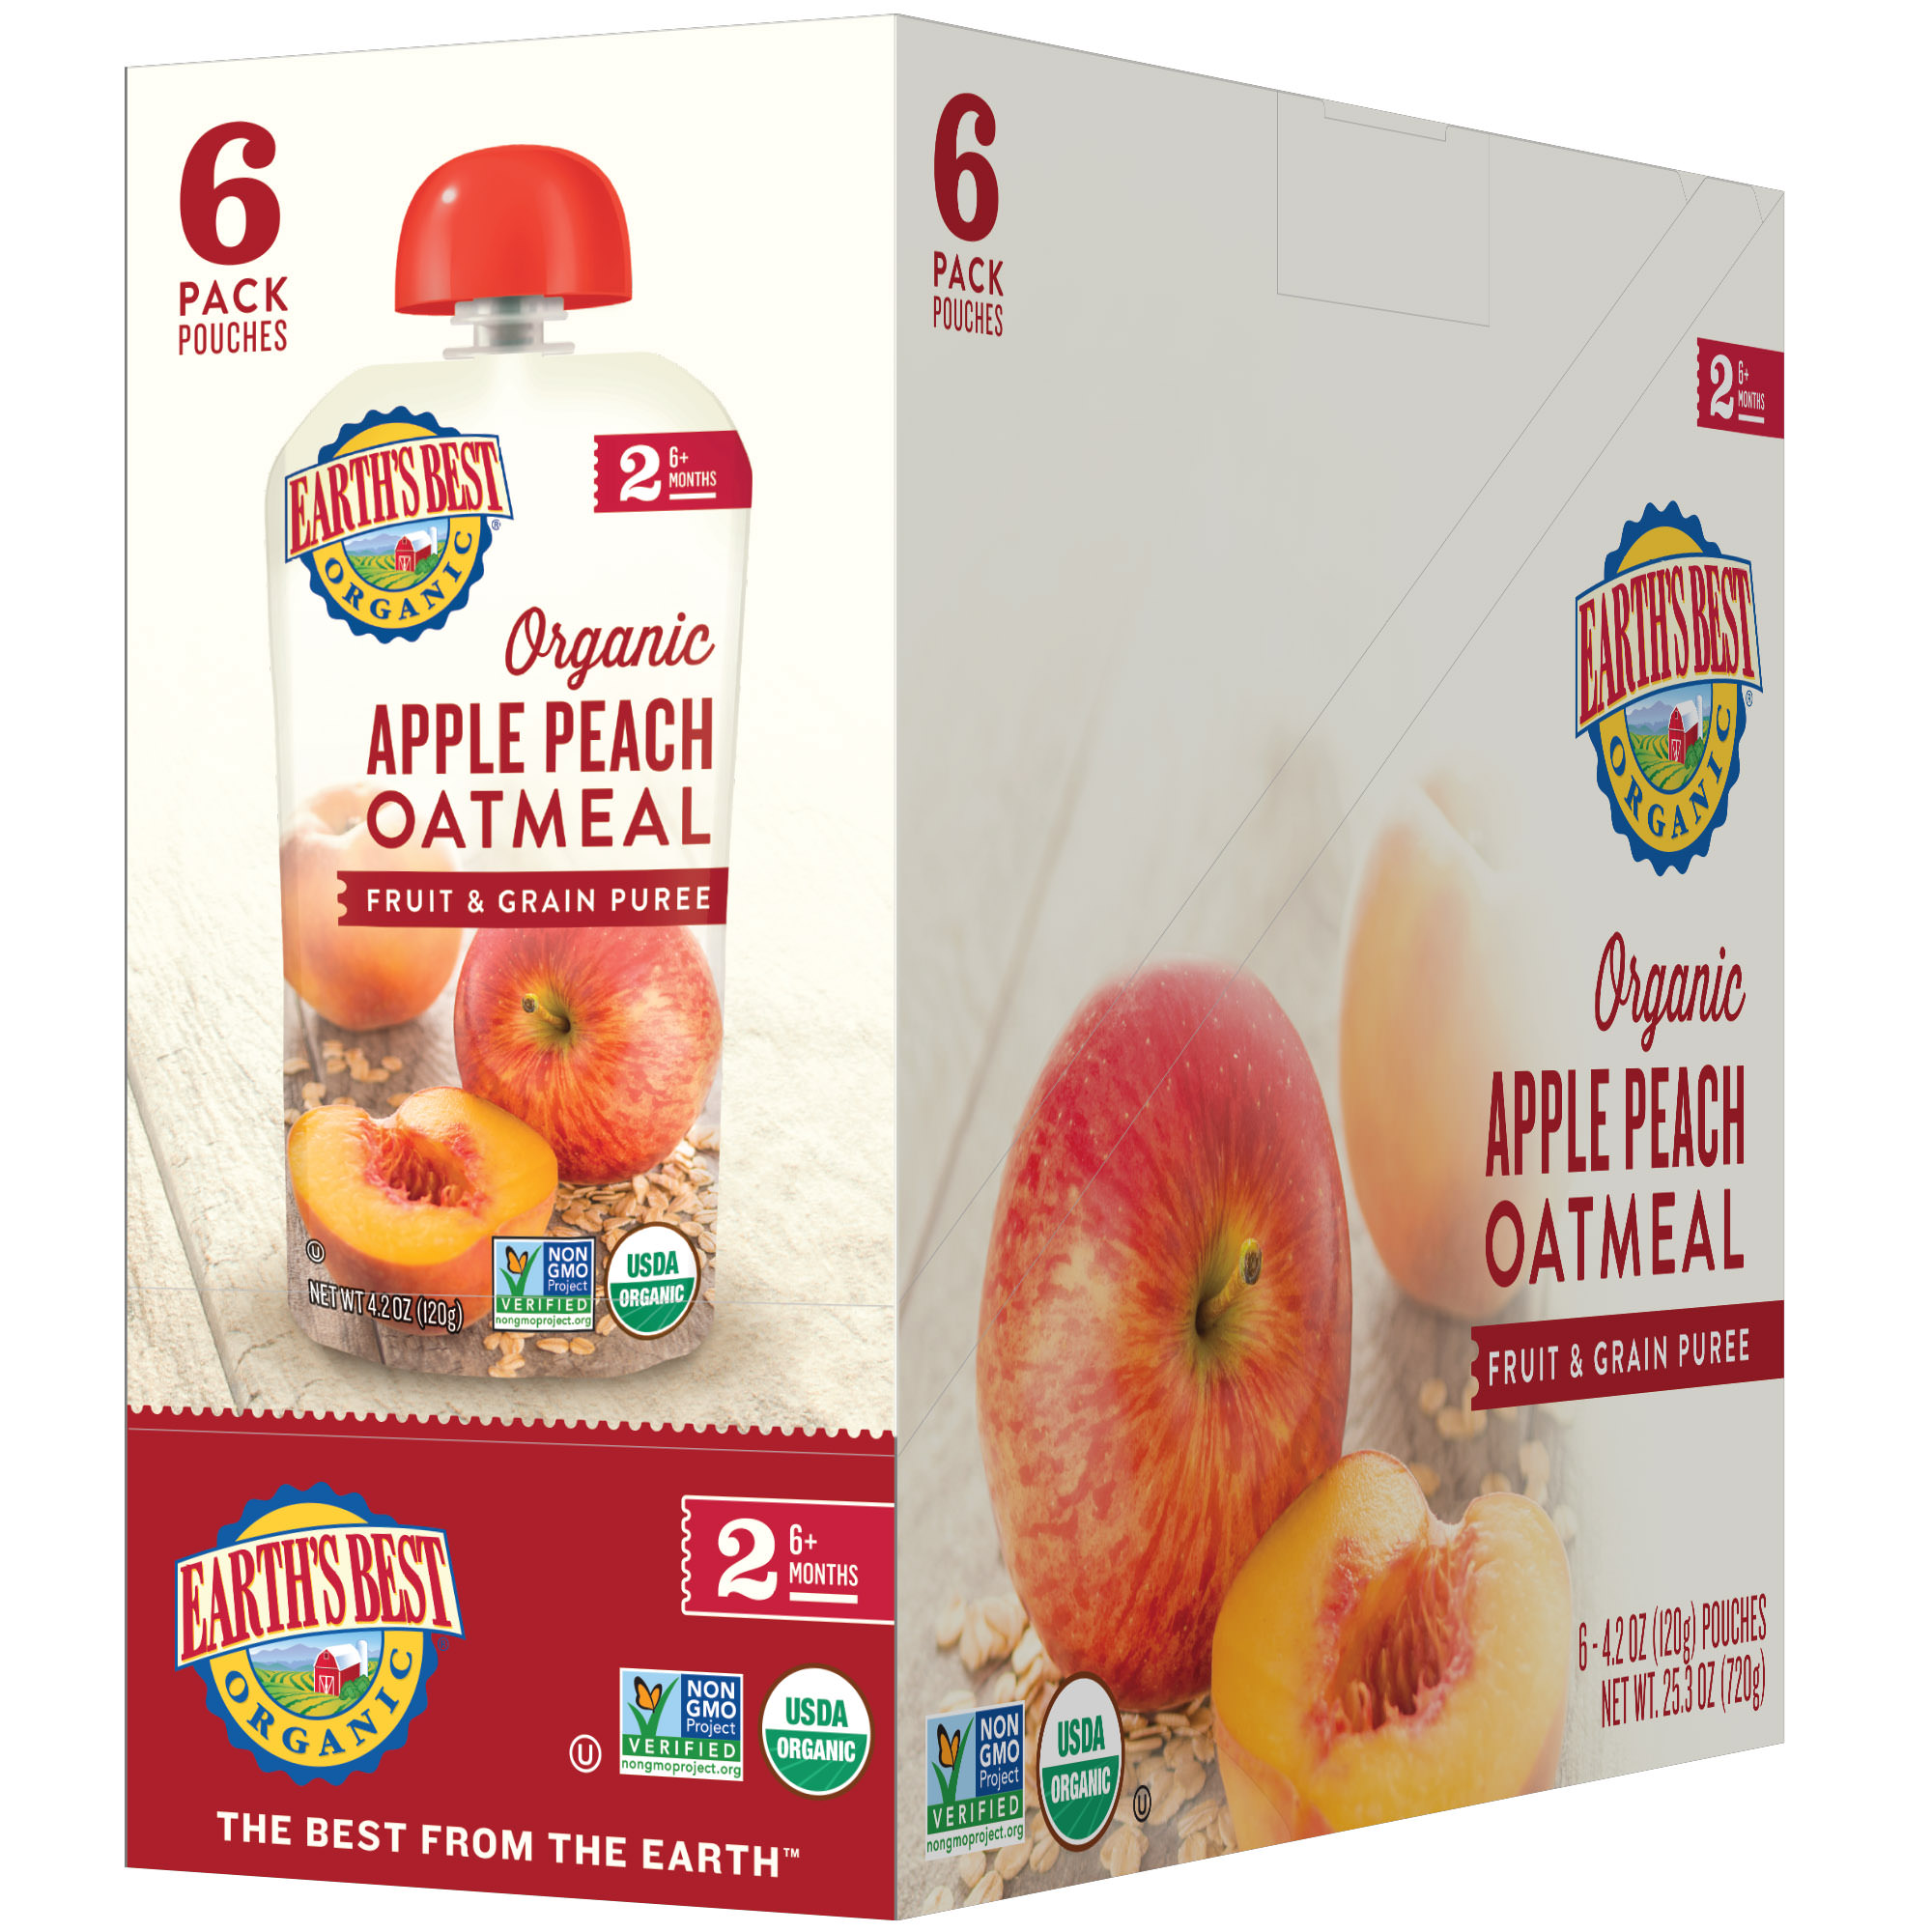 Earth's Best Organic Stage 2, Apple Peach Oatmeal Fruit and Grain Puree, 4.2 Ounce Pouch (Pack of 6)